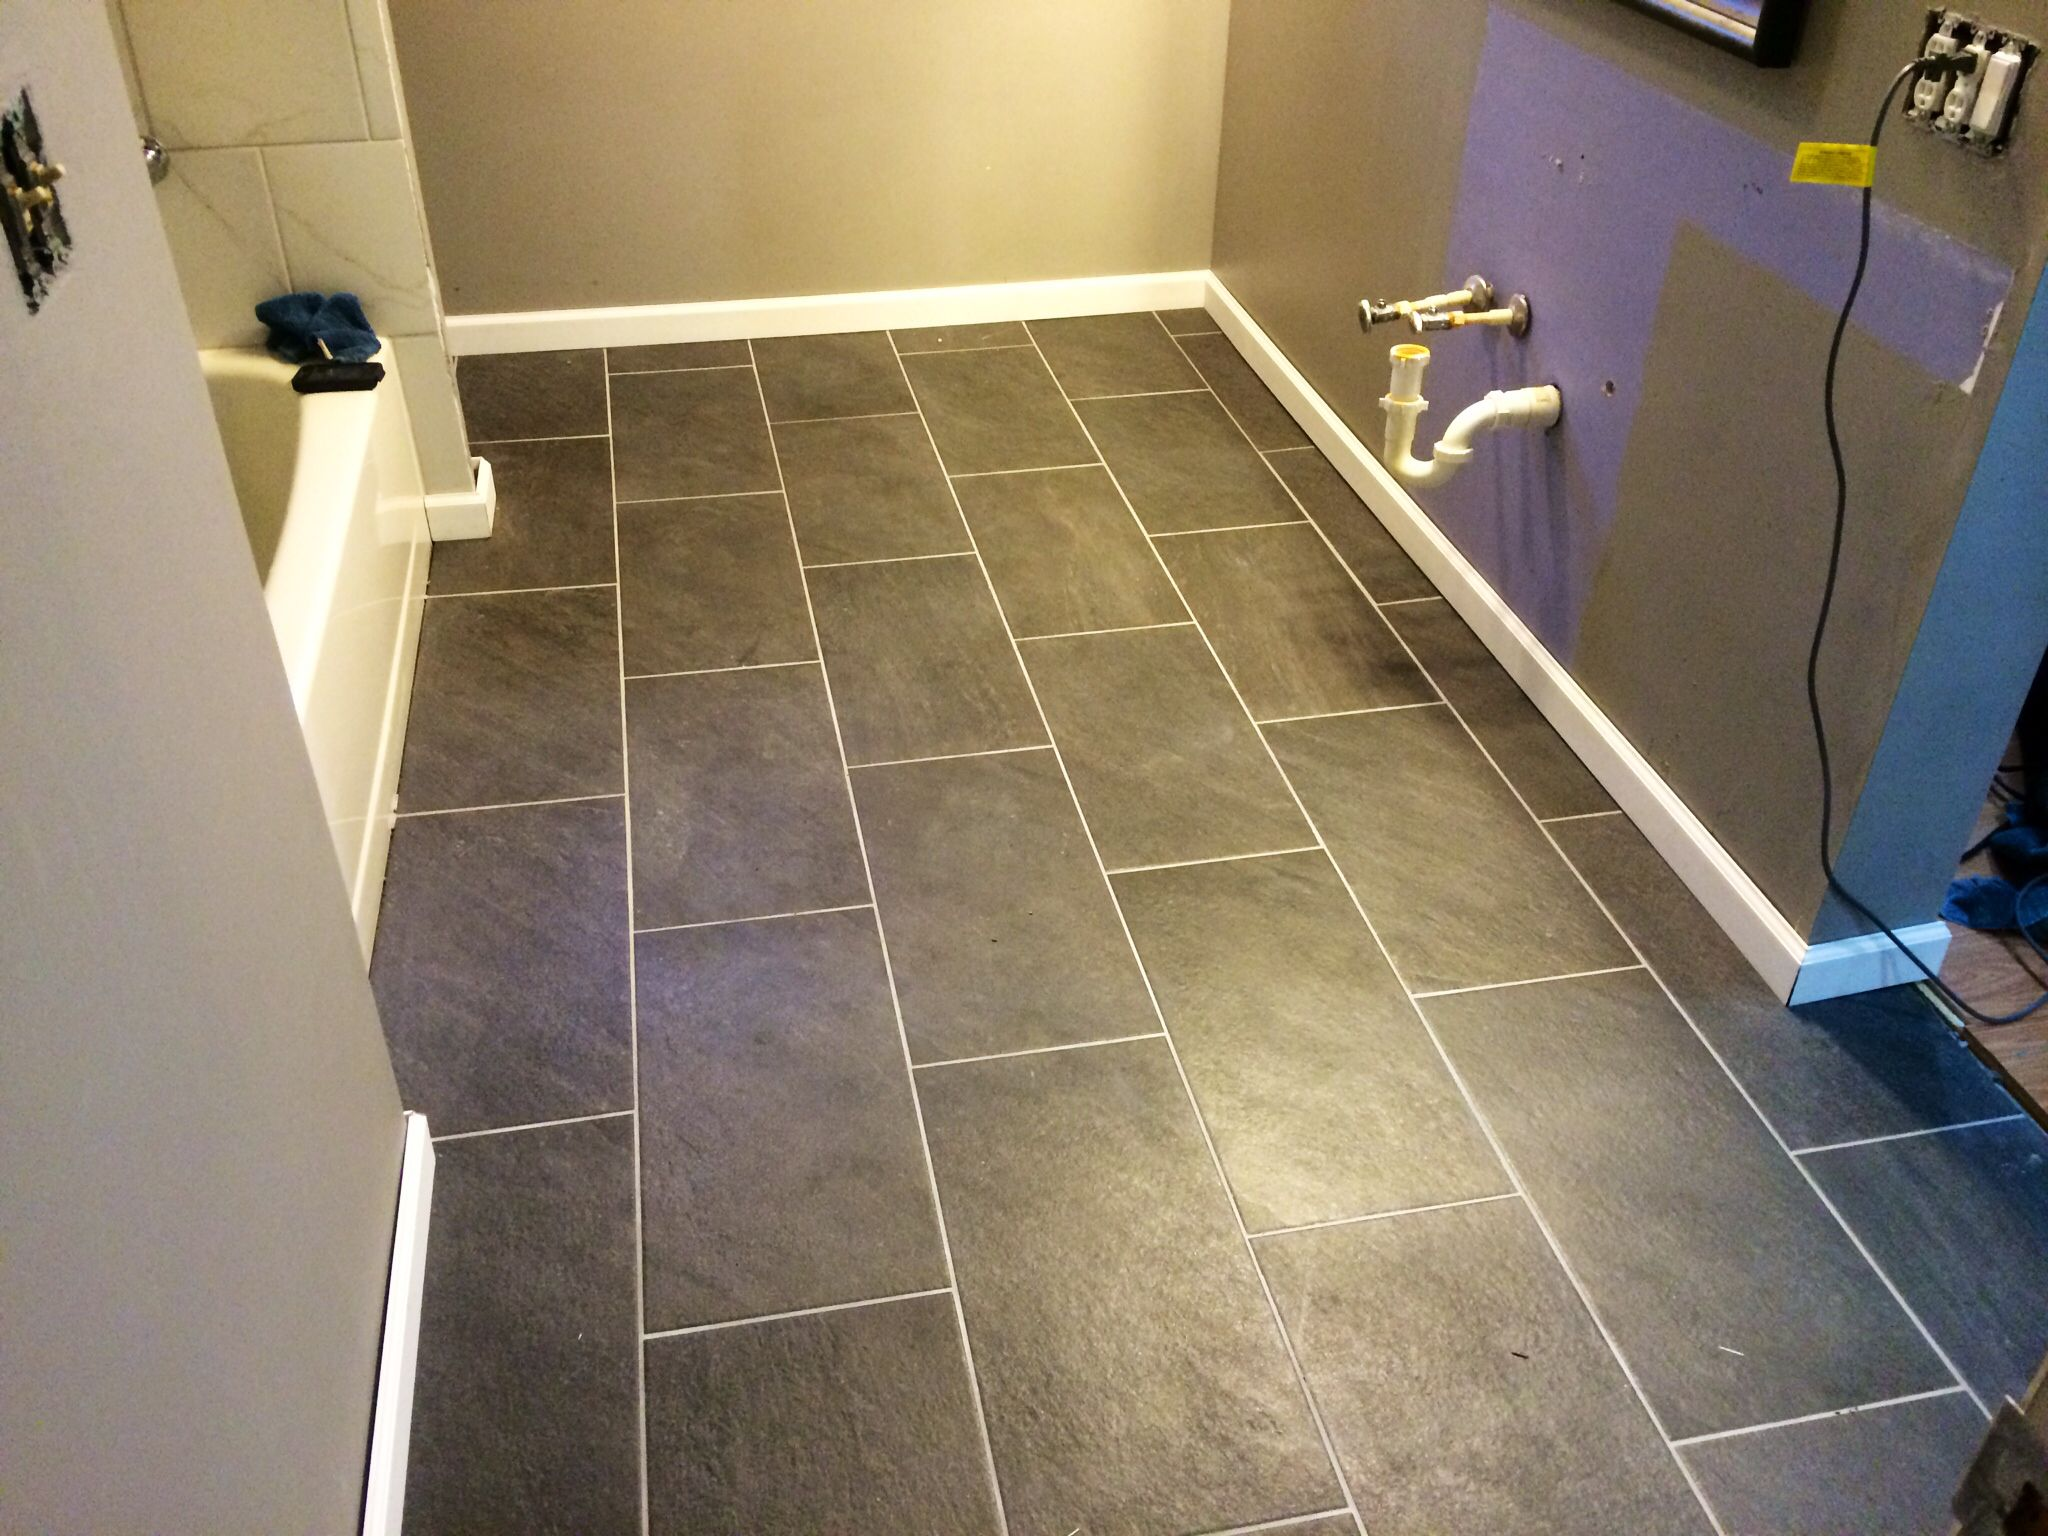 Our New Charcoal Gray 12x24 Bathroom Tile Floors. L-O-V-E